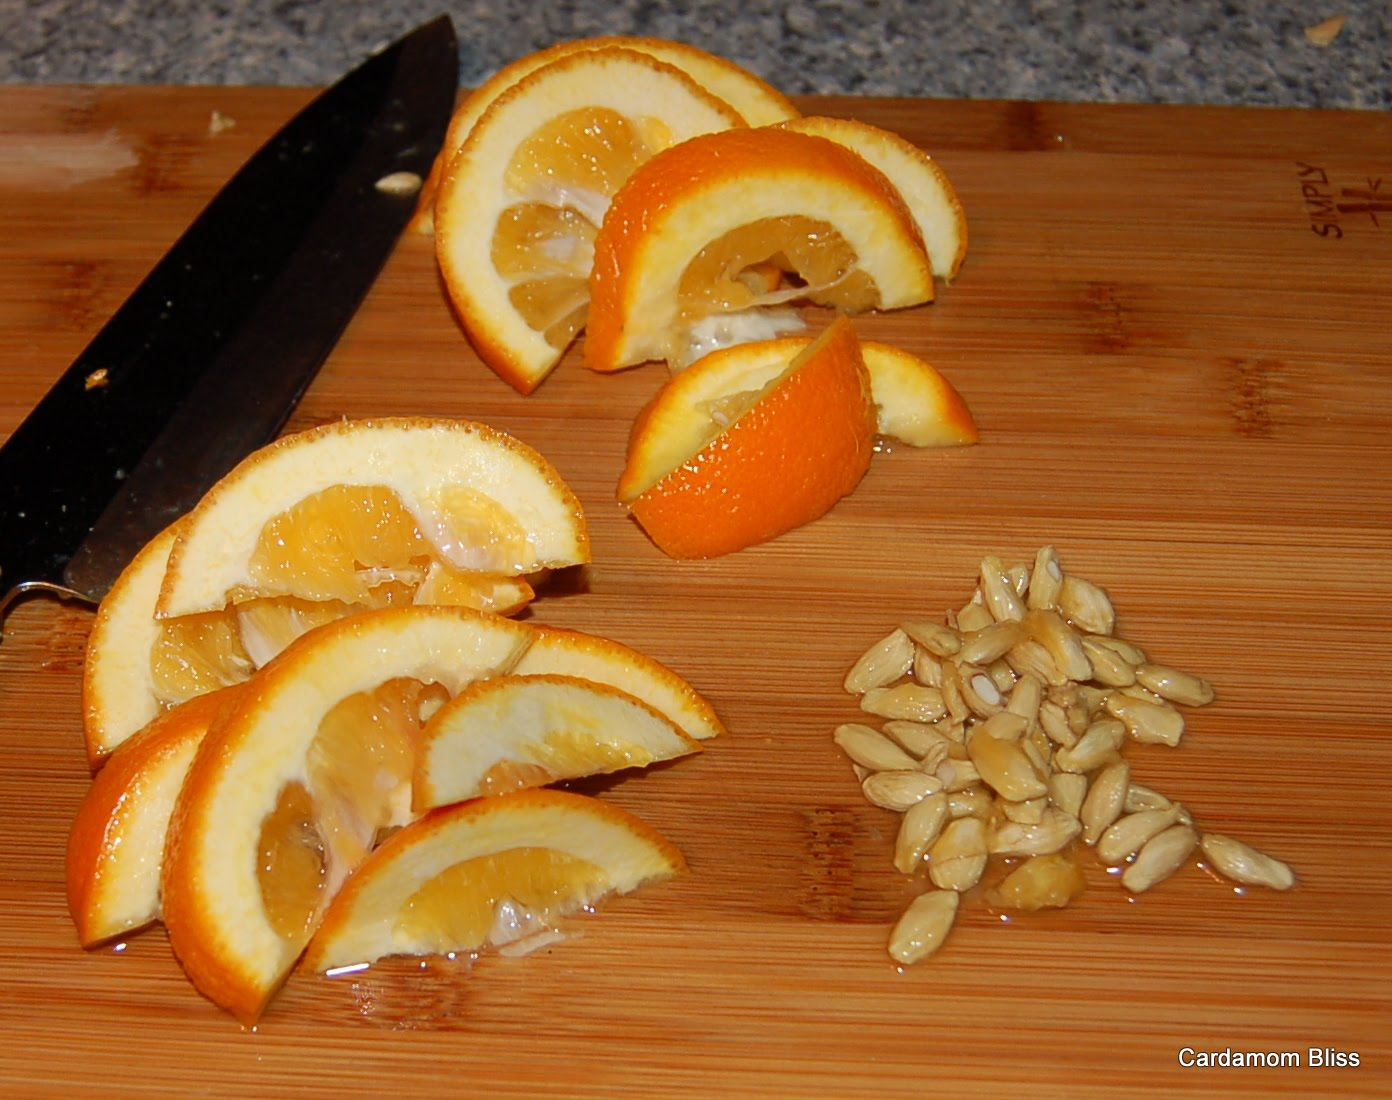 Seeded and sliced but not yet slivered Seville Oranges